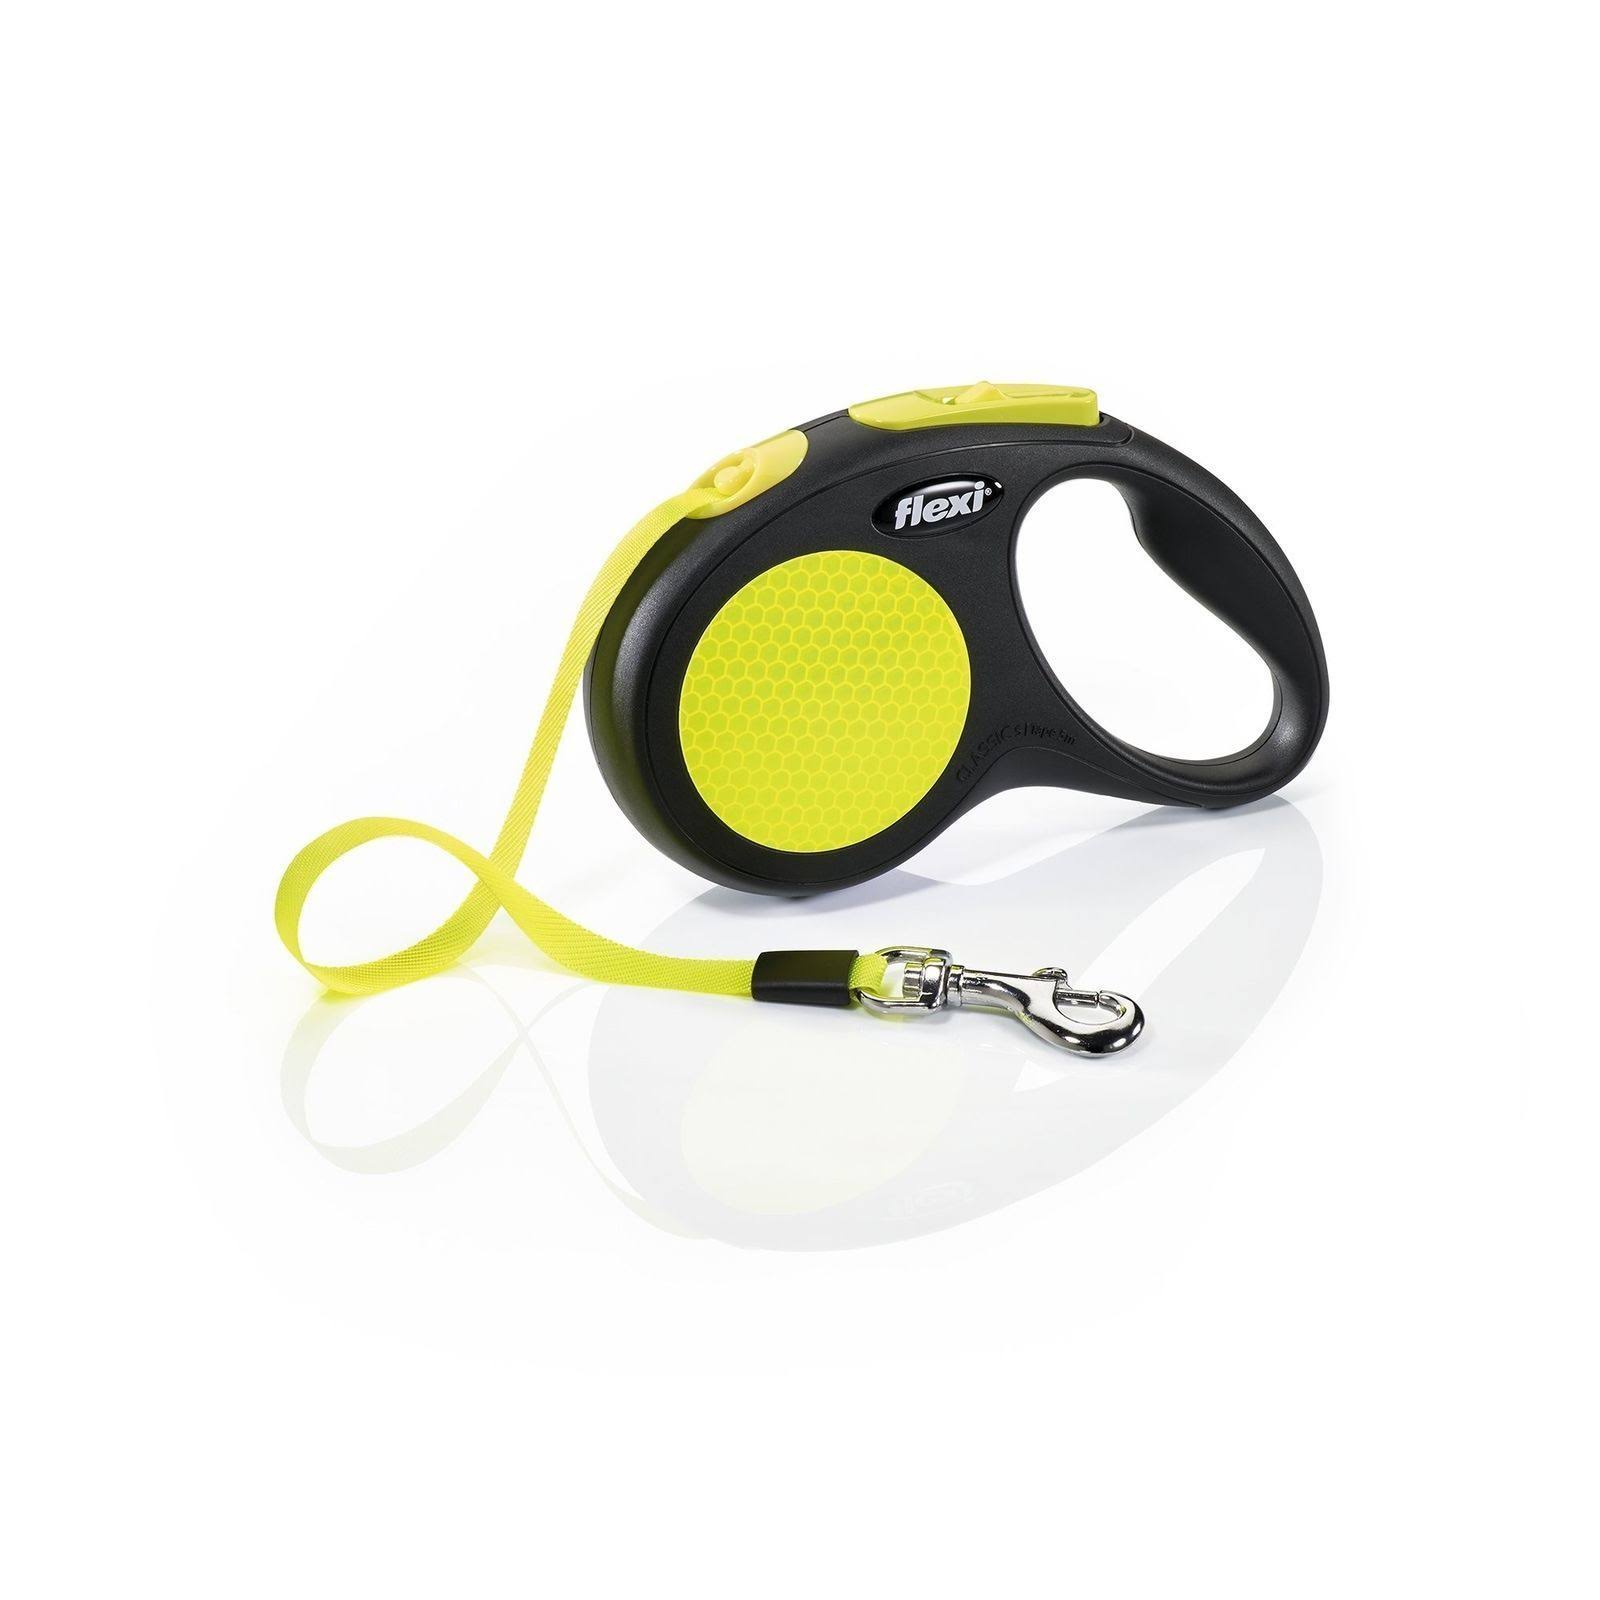 Flexi New Neon Reflective Retractable 16' Tape Leash, Small